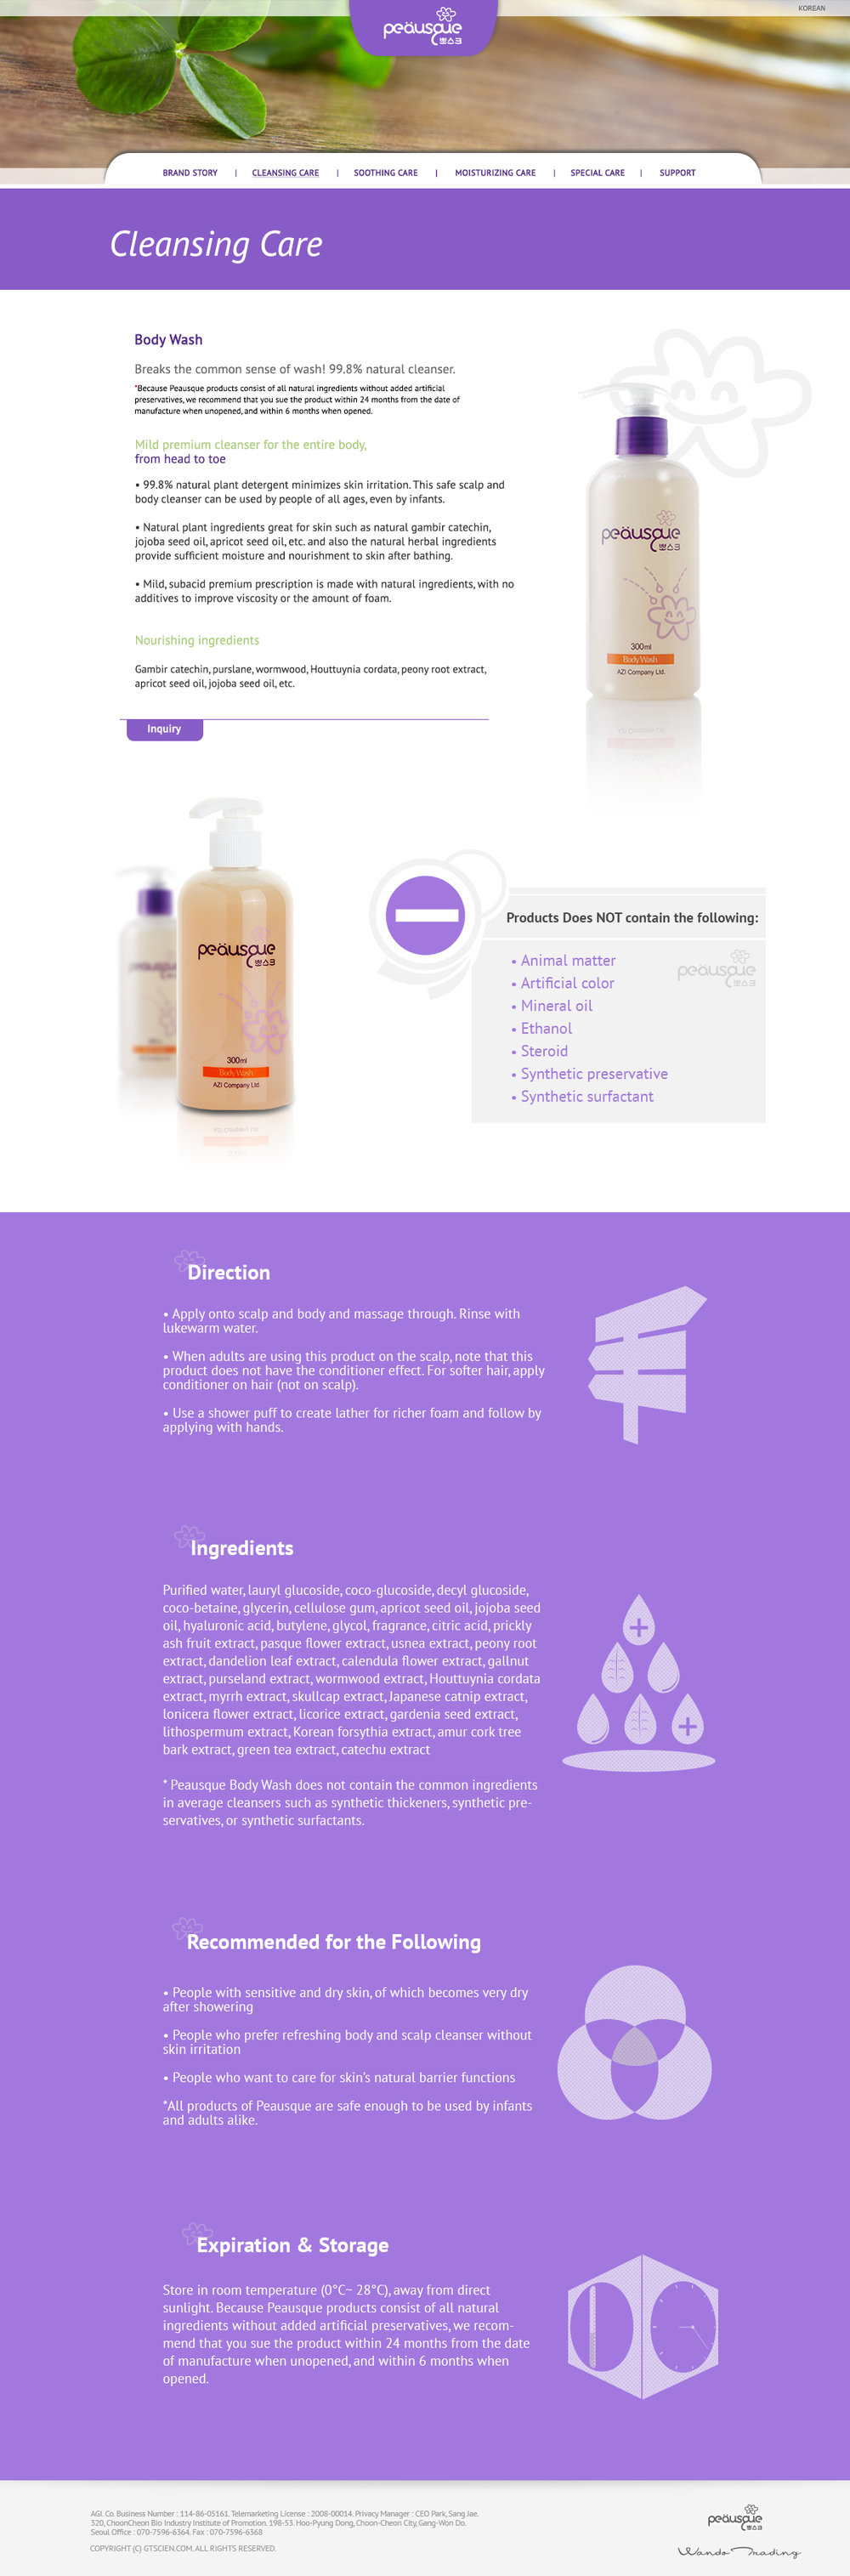 peausque_subpage_Cleansingcare-2.jpg